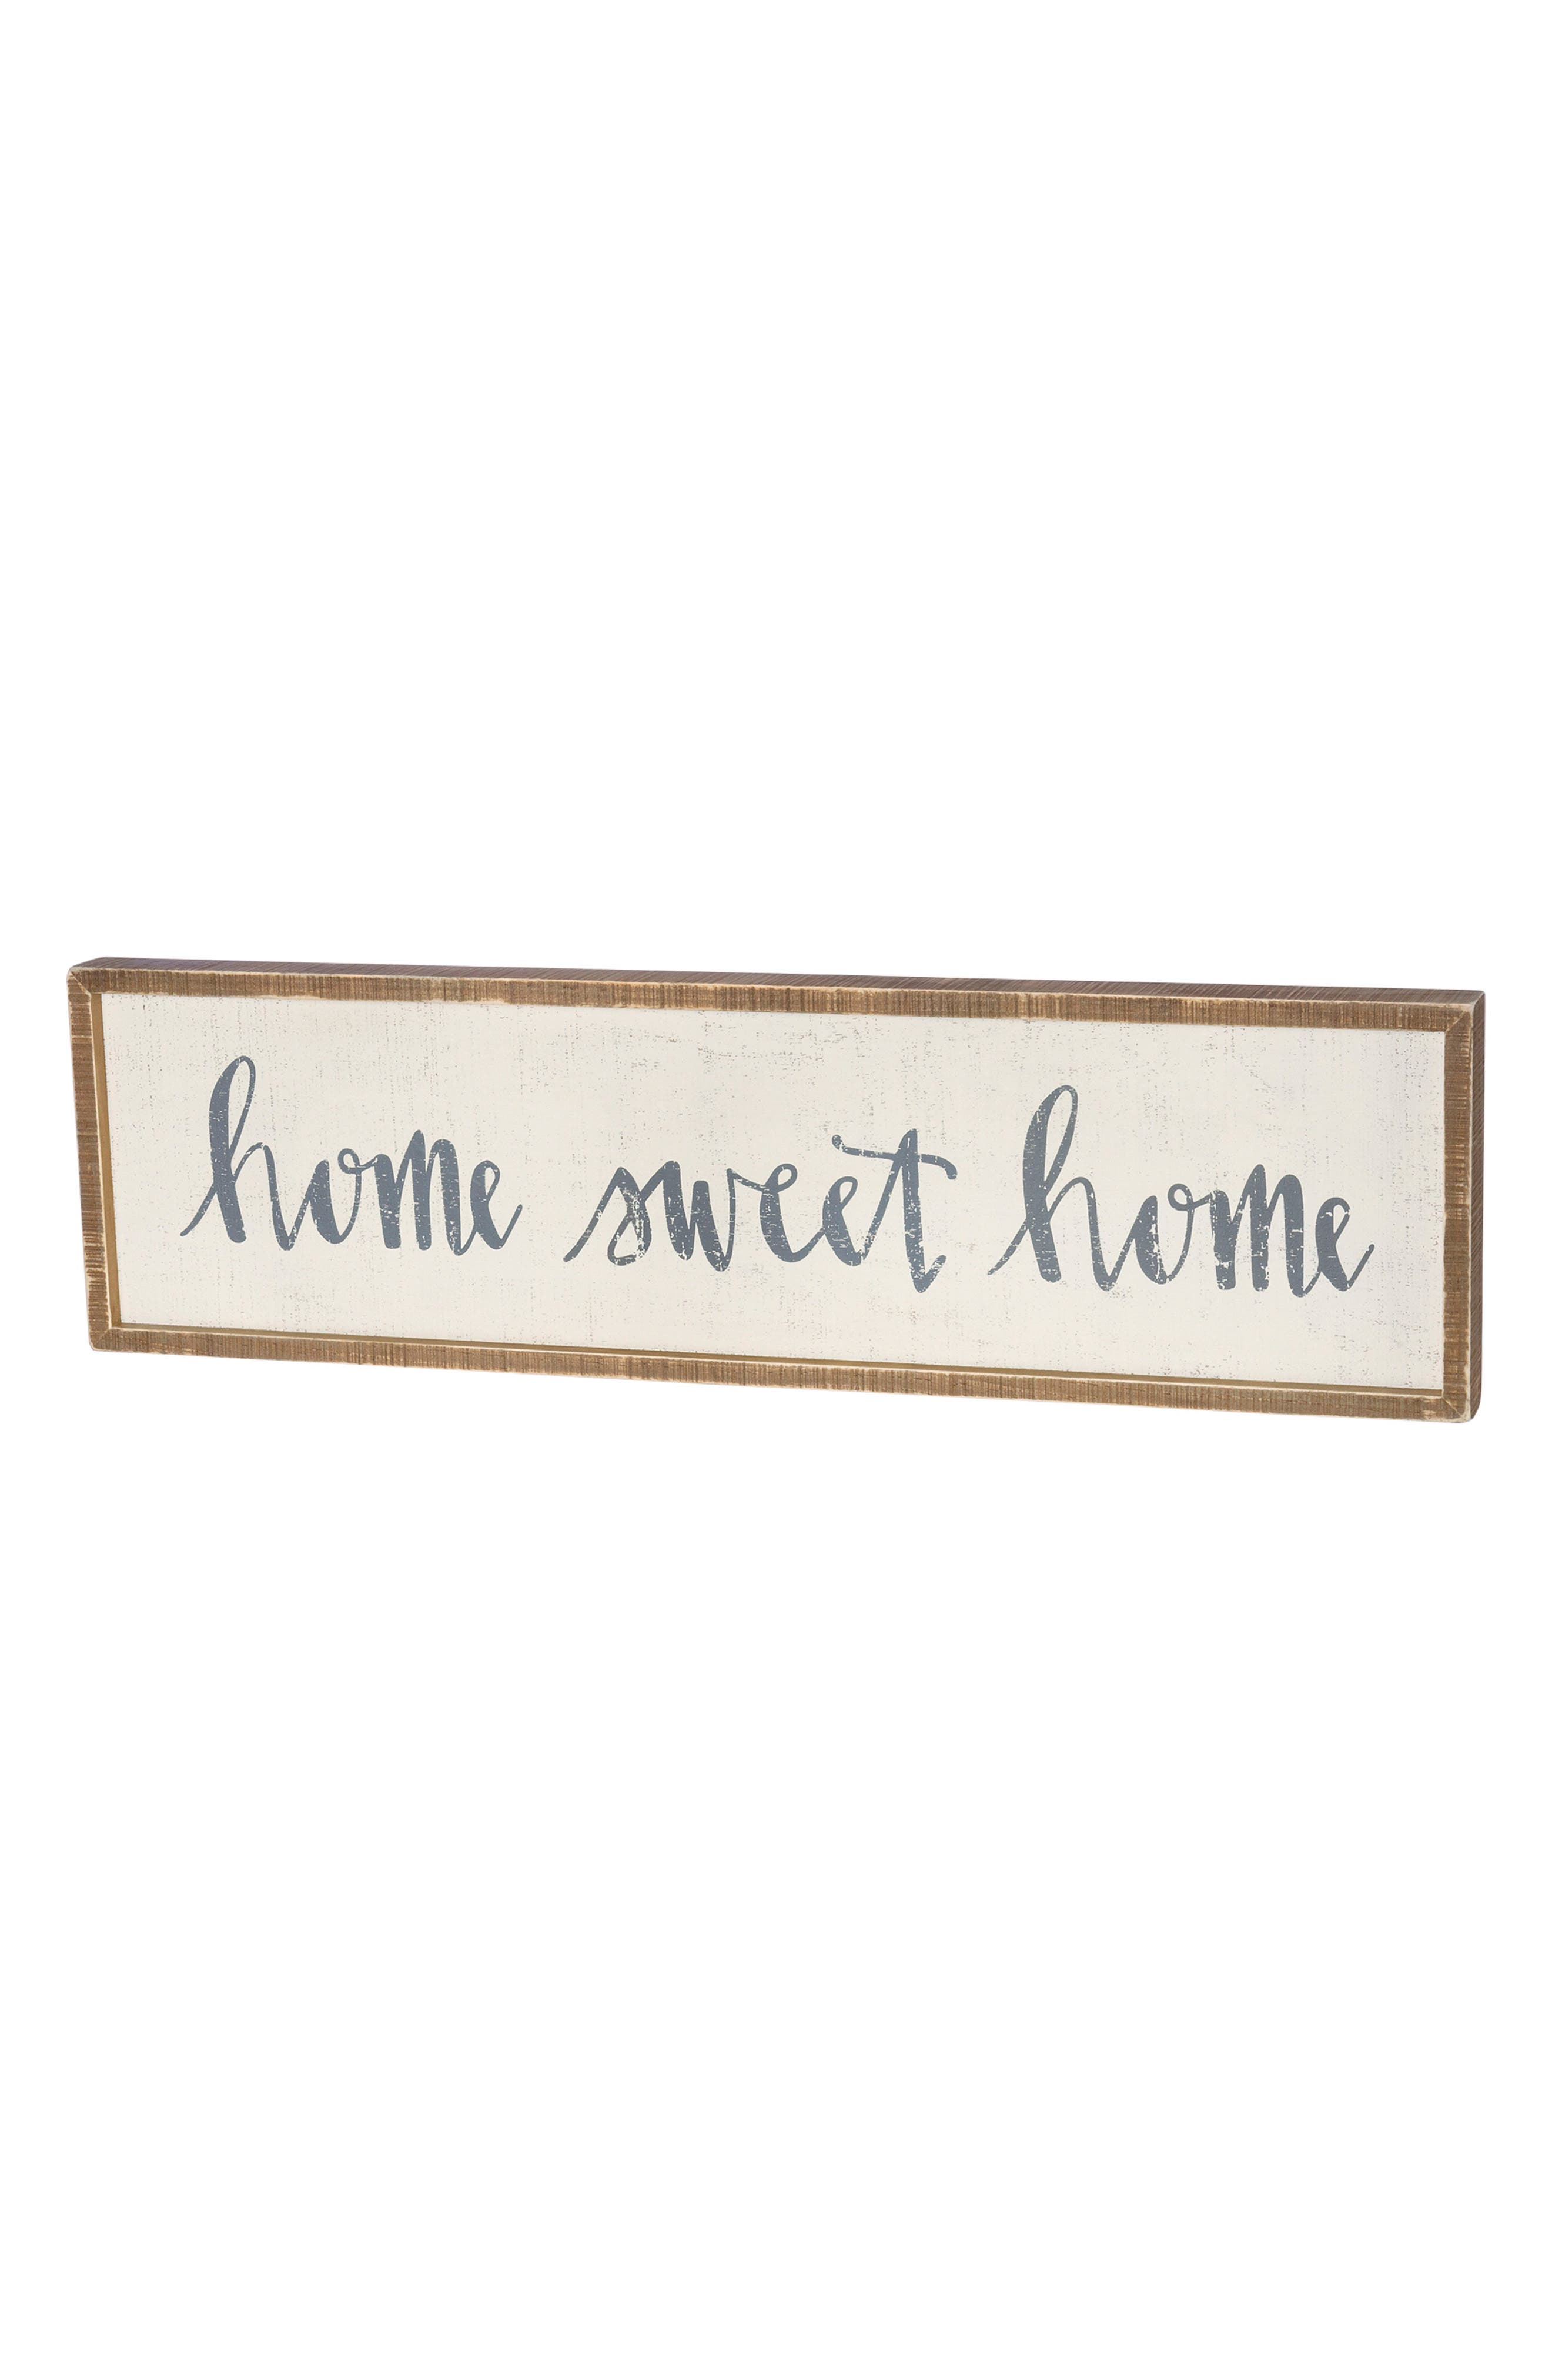 Home Sweet Home Inset Box Sign,                             Main thumbnail 1, color,                             100